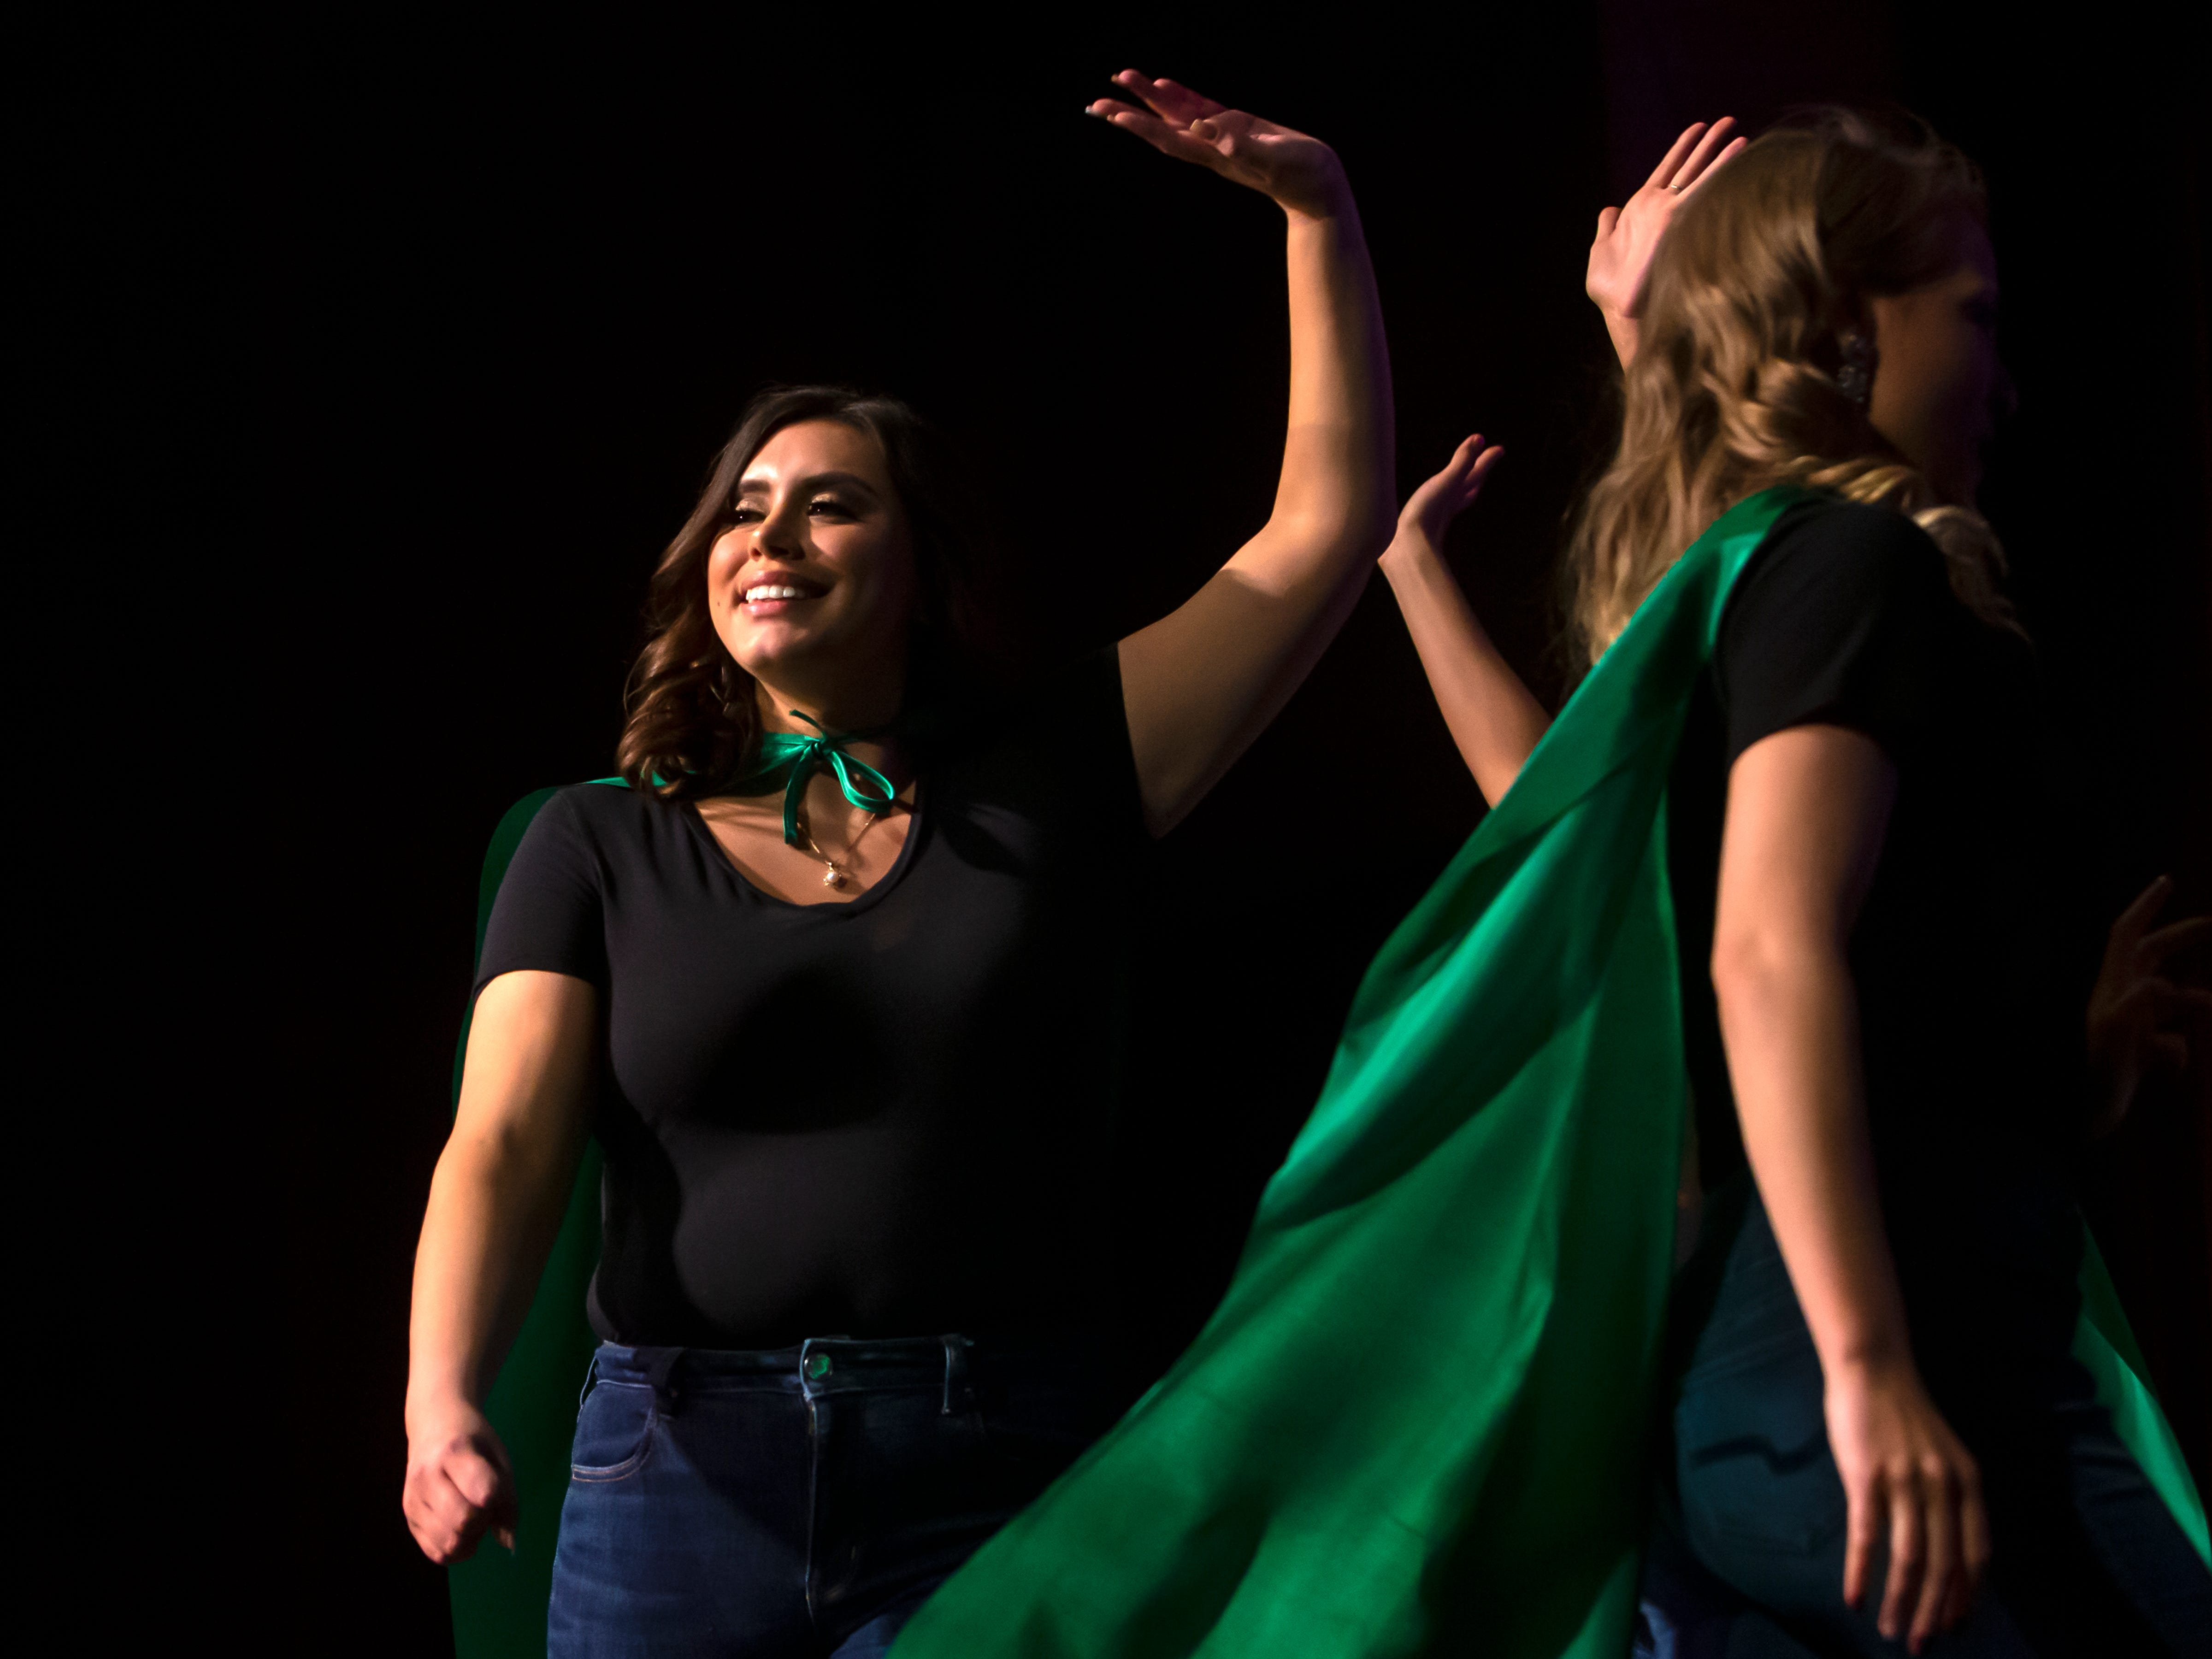 Anastacia King waves to the crowd during the Miss Oshkosh Scholarship Pageant Saturday, March 2, 2019, at Alberta Kimball Auditorium in Oshkosh, Wis.